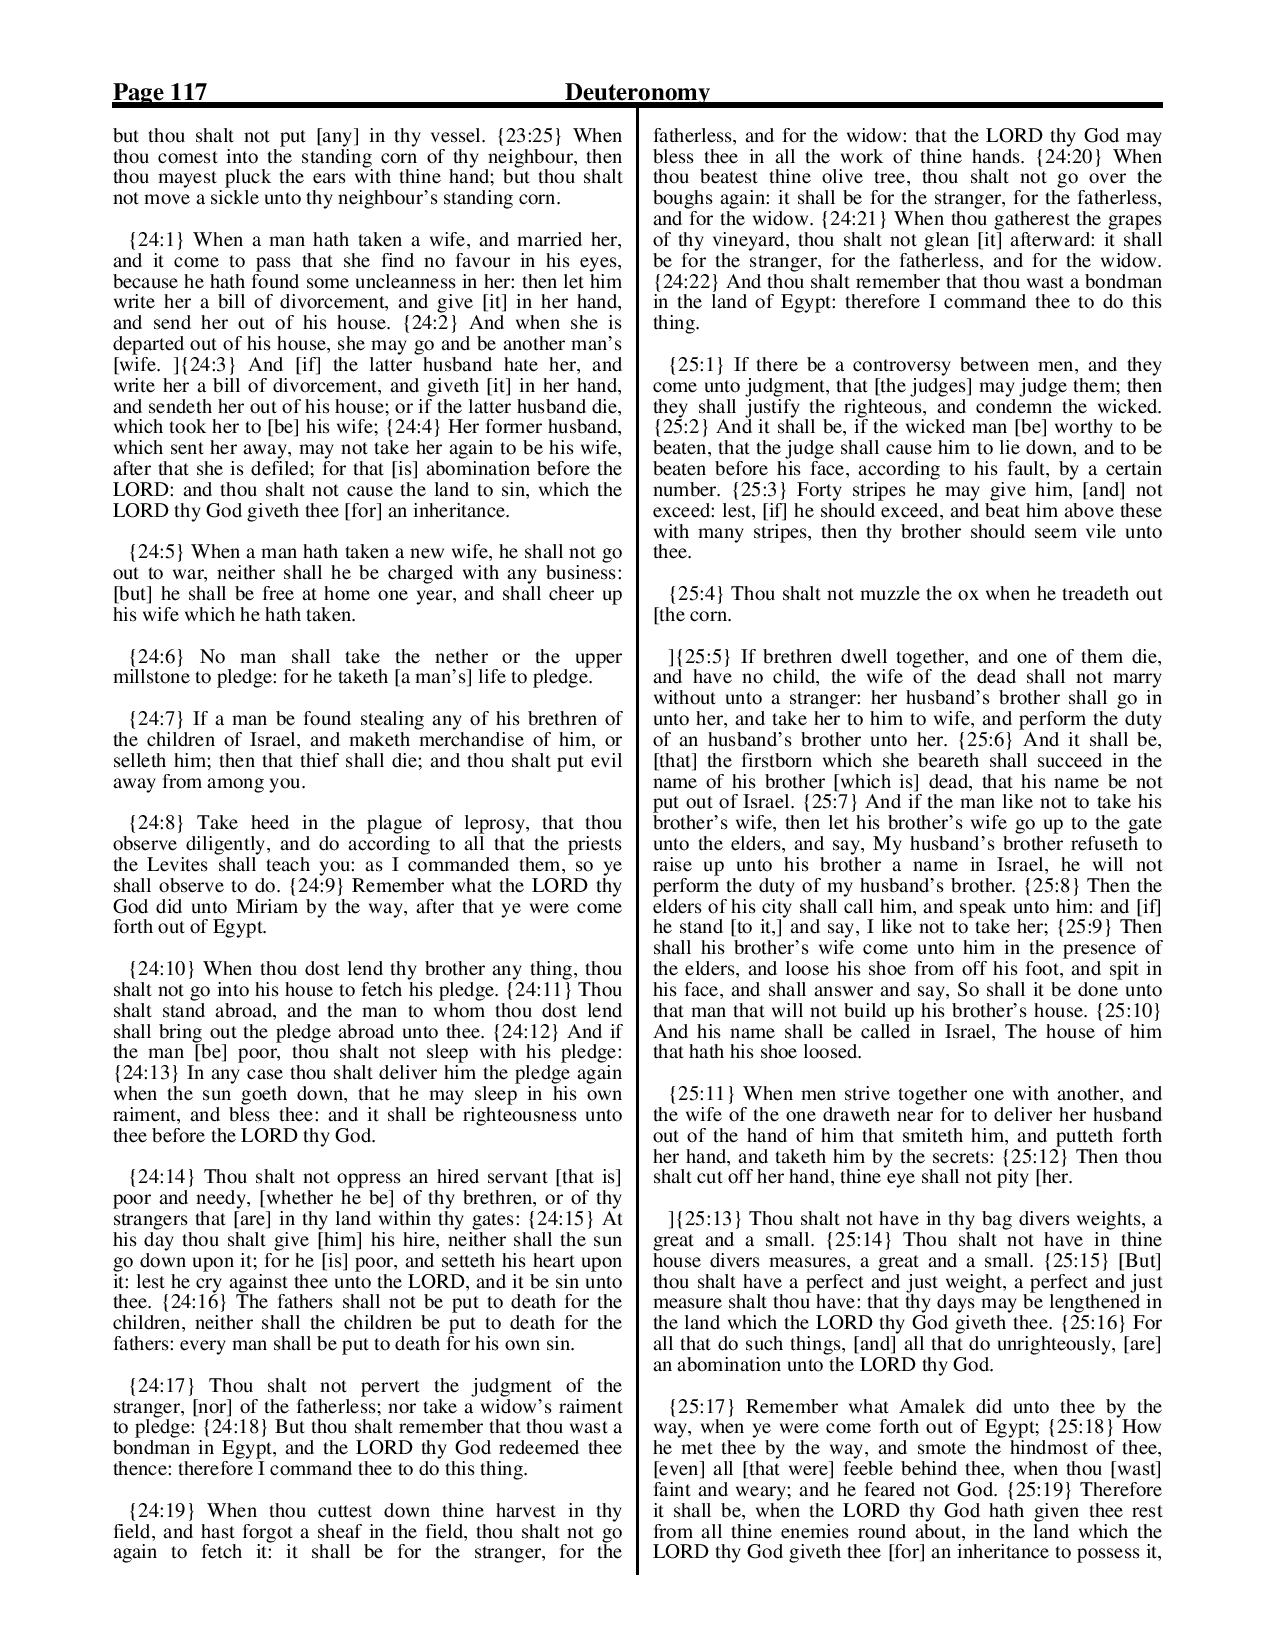 King-James-Bible-KJV-Bible-PDF-page-138